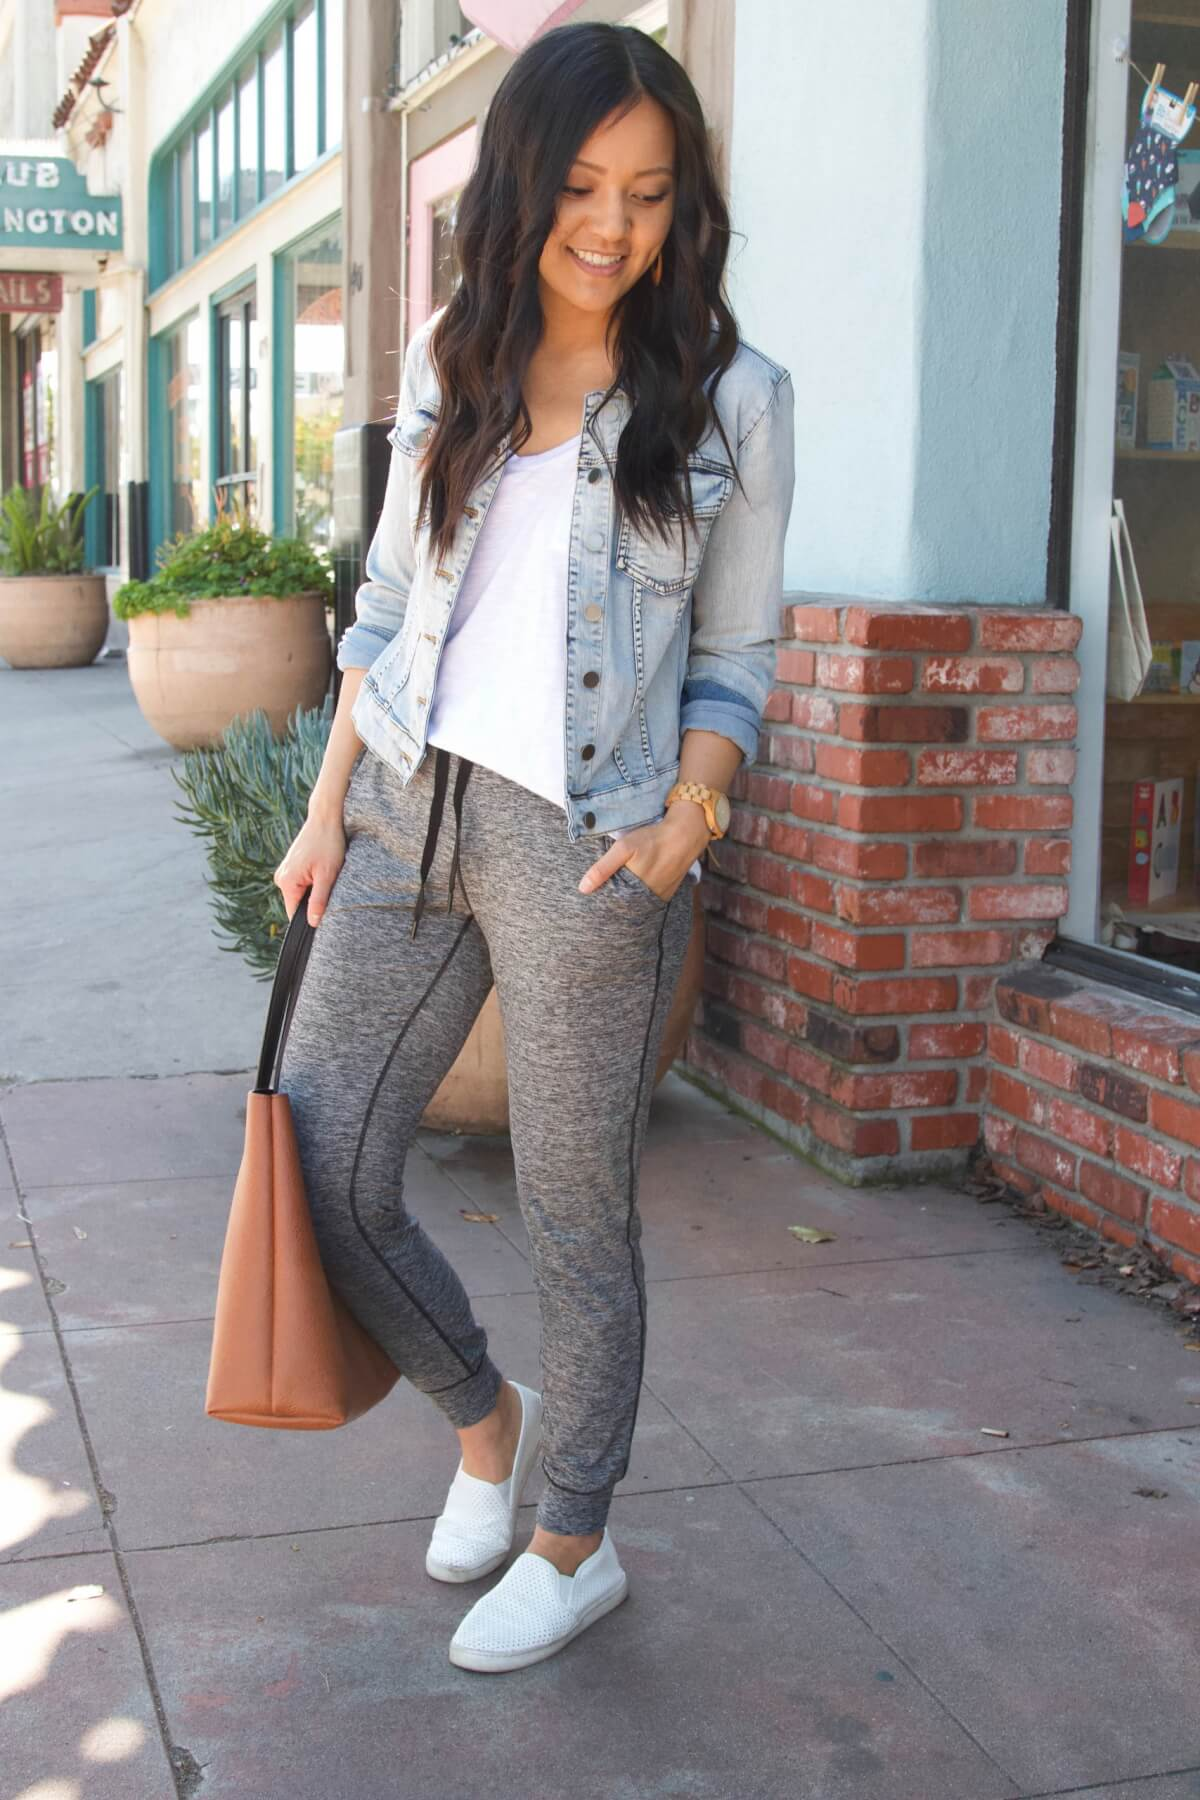 denim jacket outfit: denim jacket + white tee + gray joggers + white sneakers + brown tote